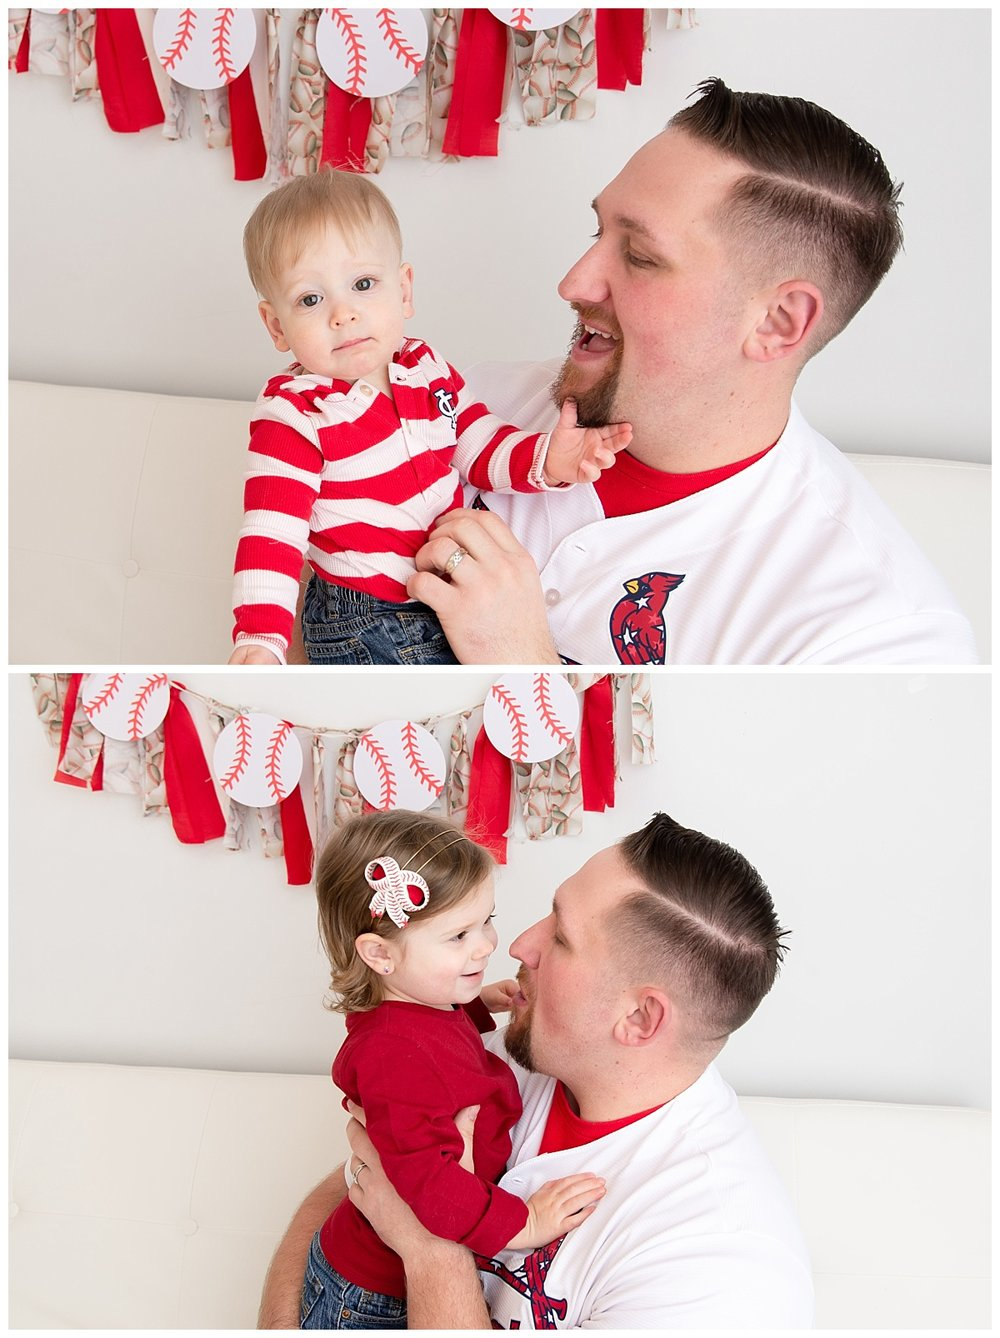 st-louis-family-photographer-st-louis-cardinals-family-pictures-dad-with-kids.jpg